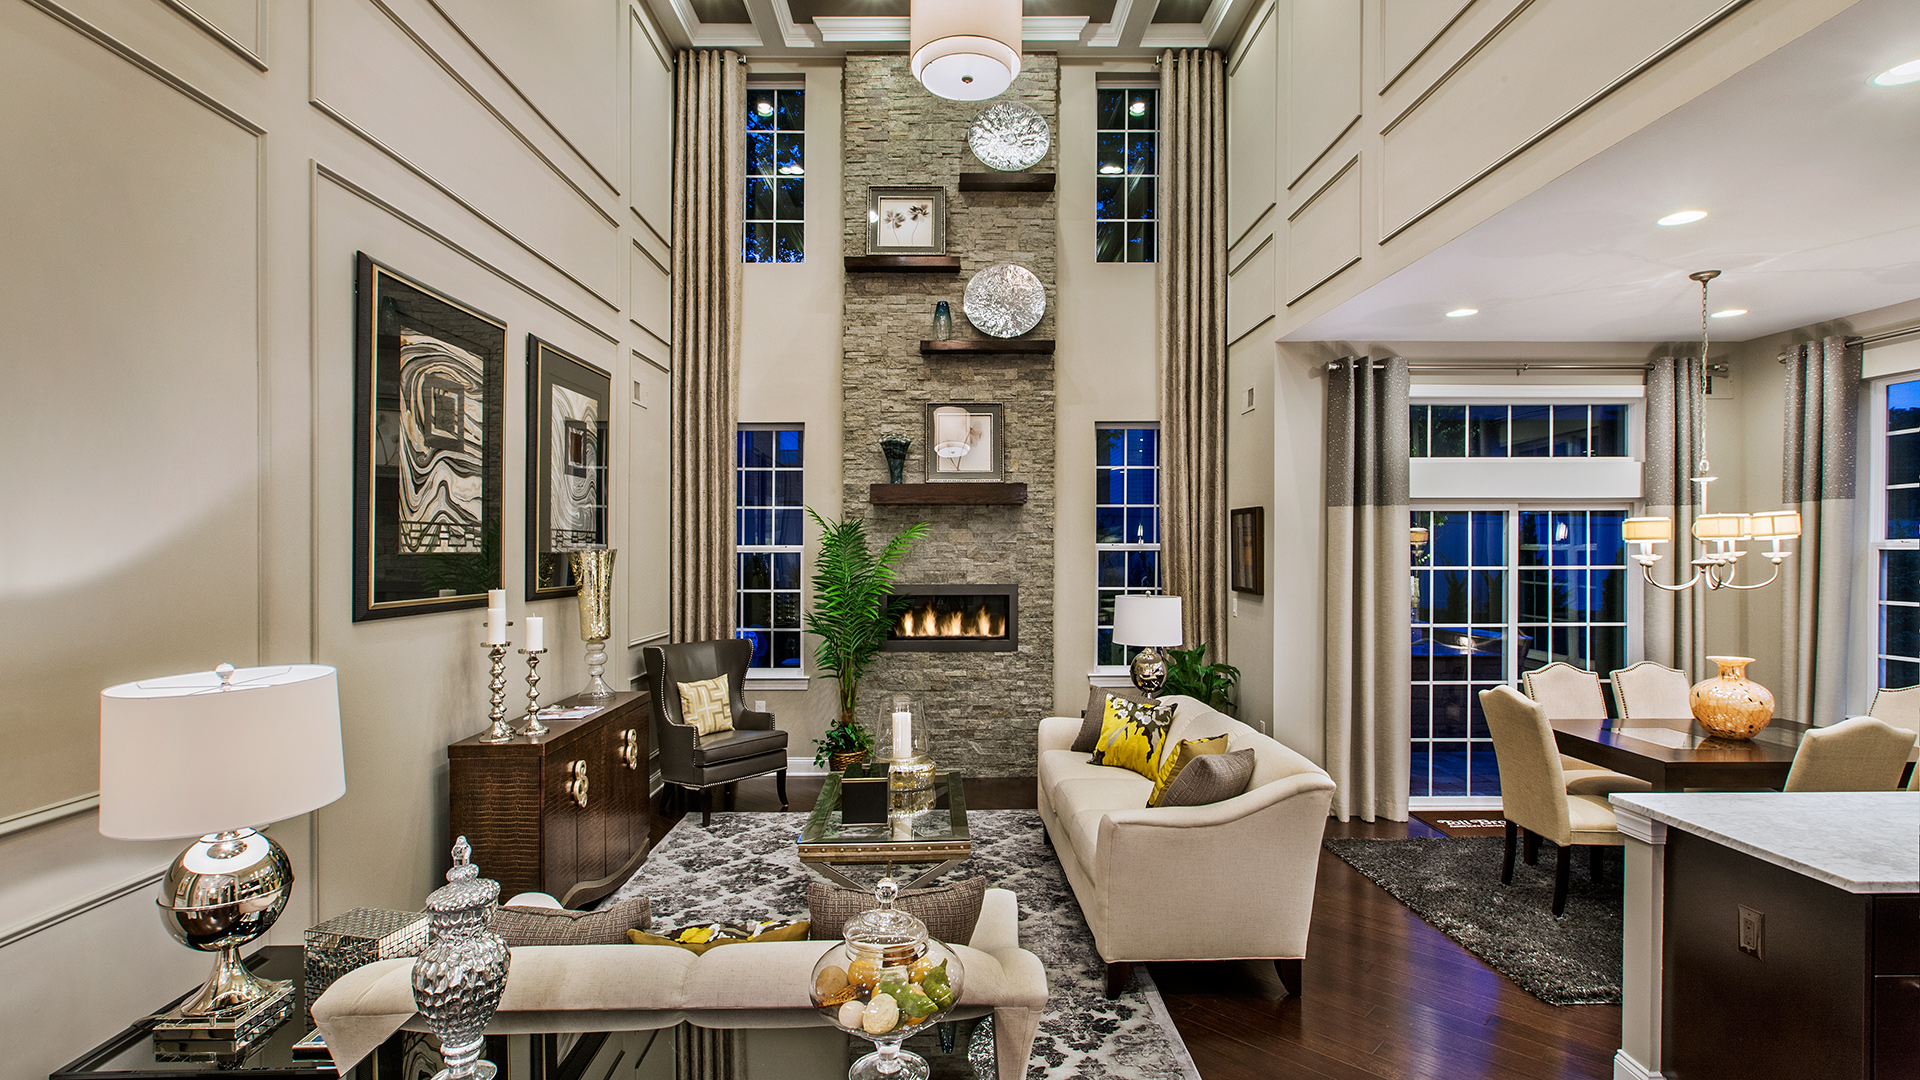 Stunning Volume Ceilings and Open Floor Plans